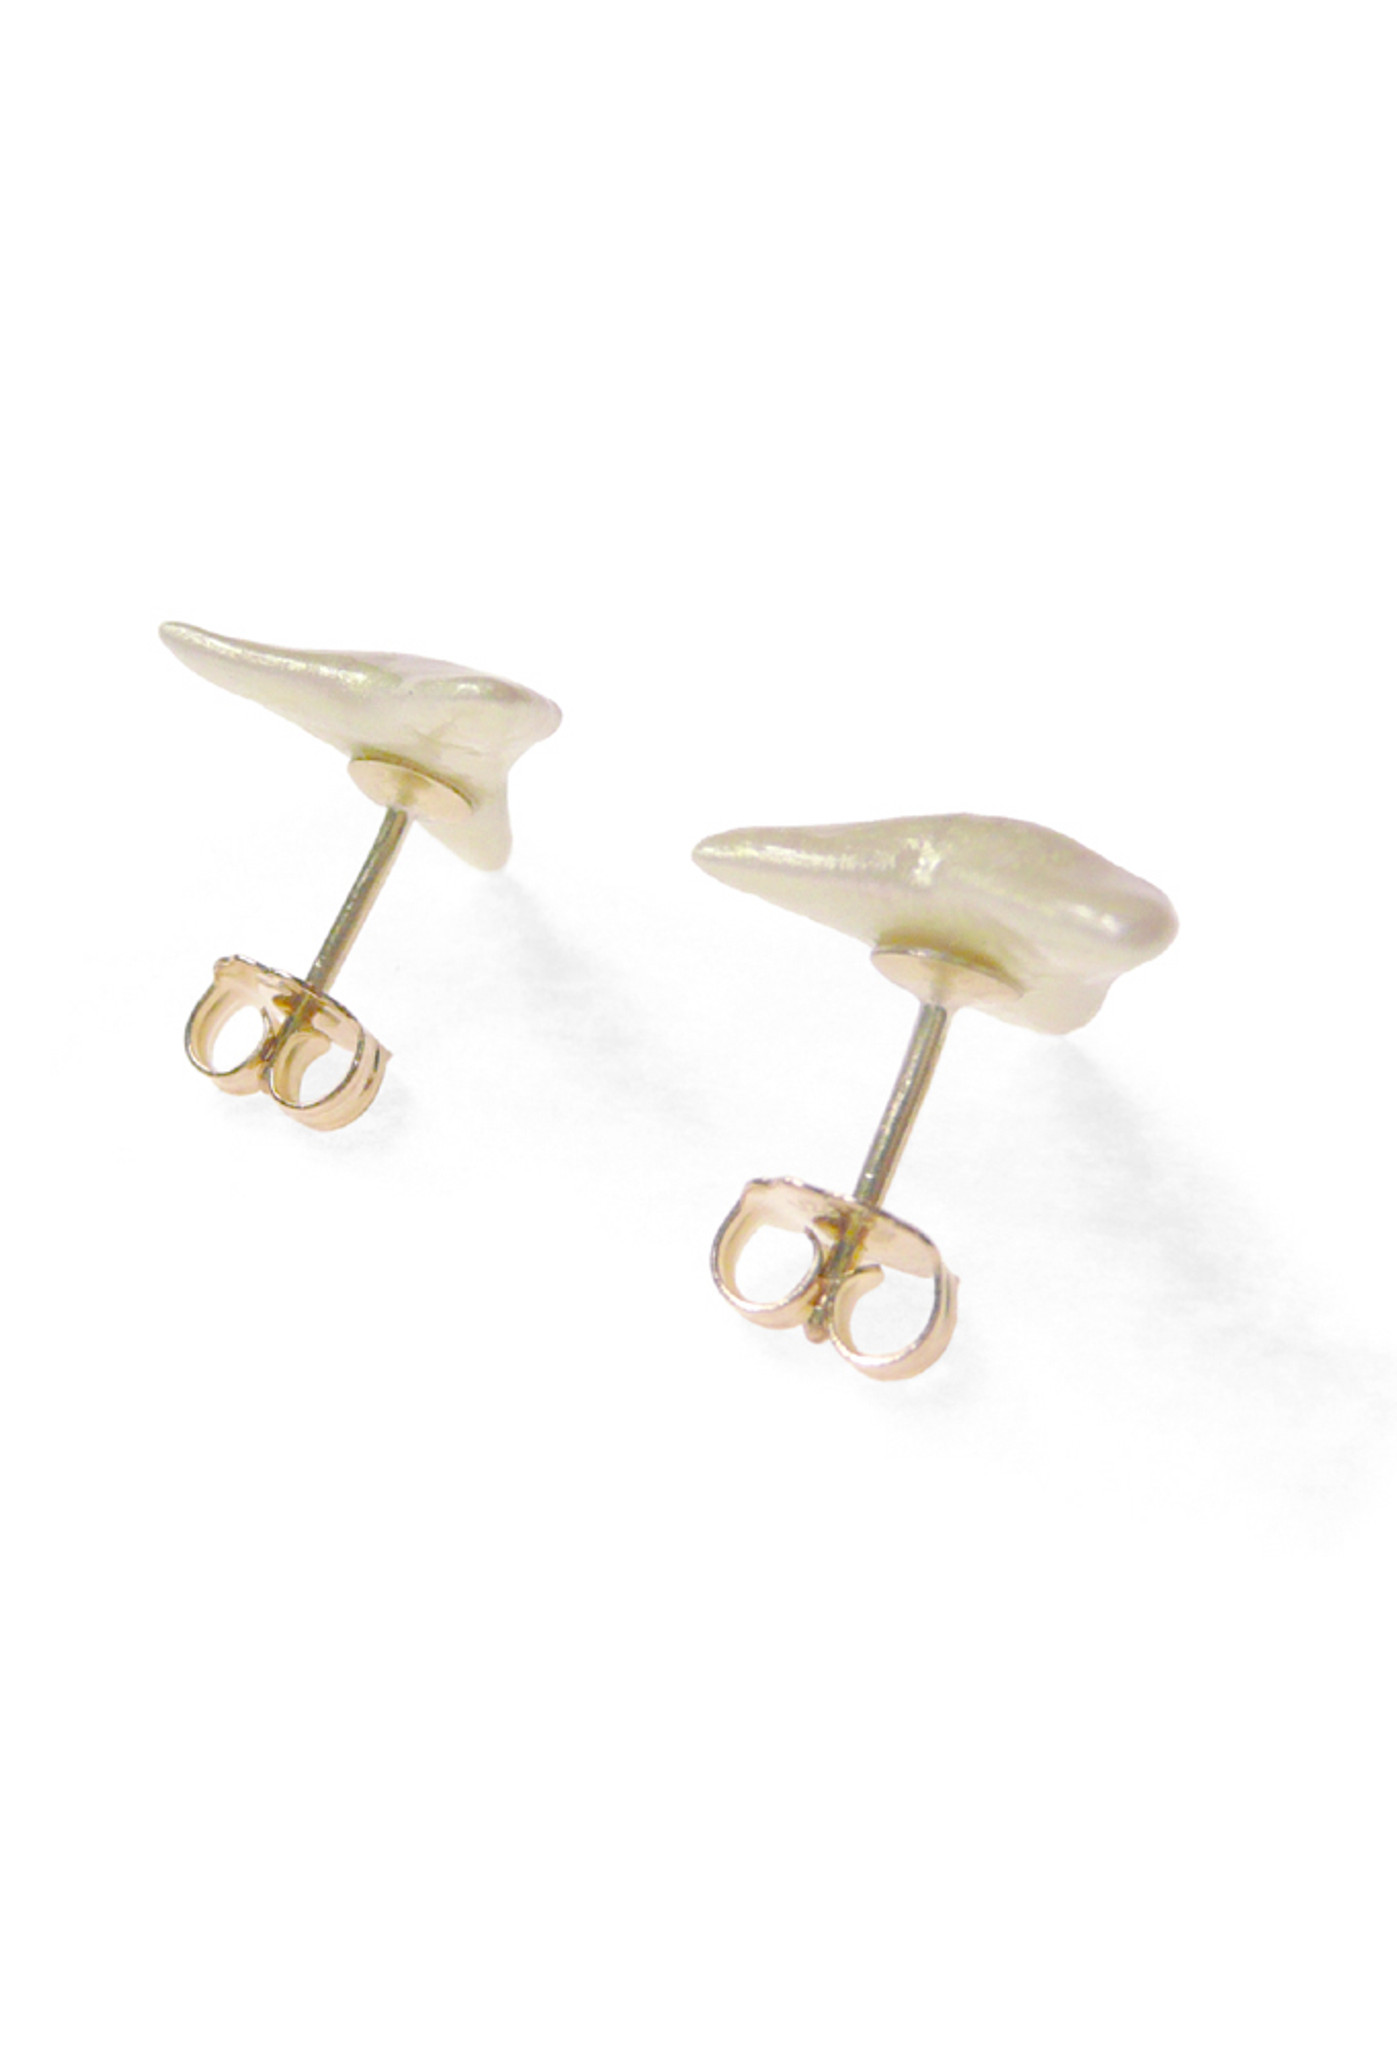 Back View of Everybody's Favorite Shark Teeth Earrings with 14k Gold Post (Solid Sterling Silver coated with White Pearl Enamel) by Nektar De Stagni.